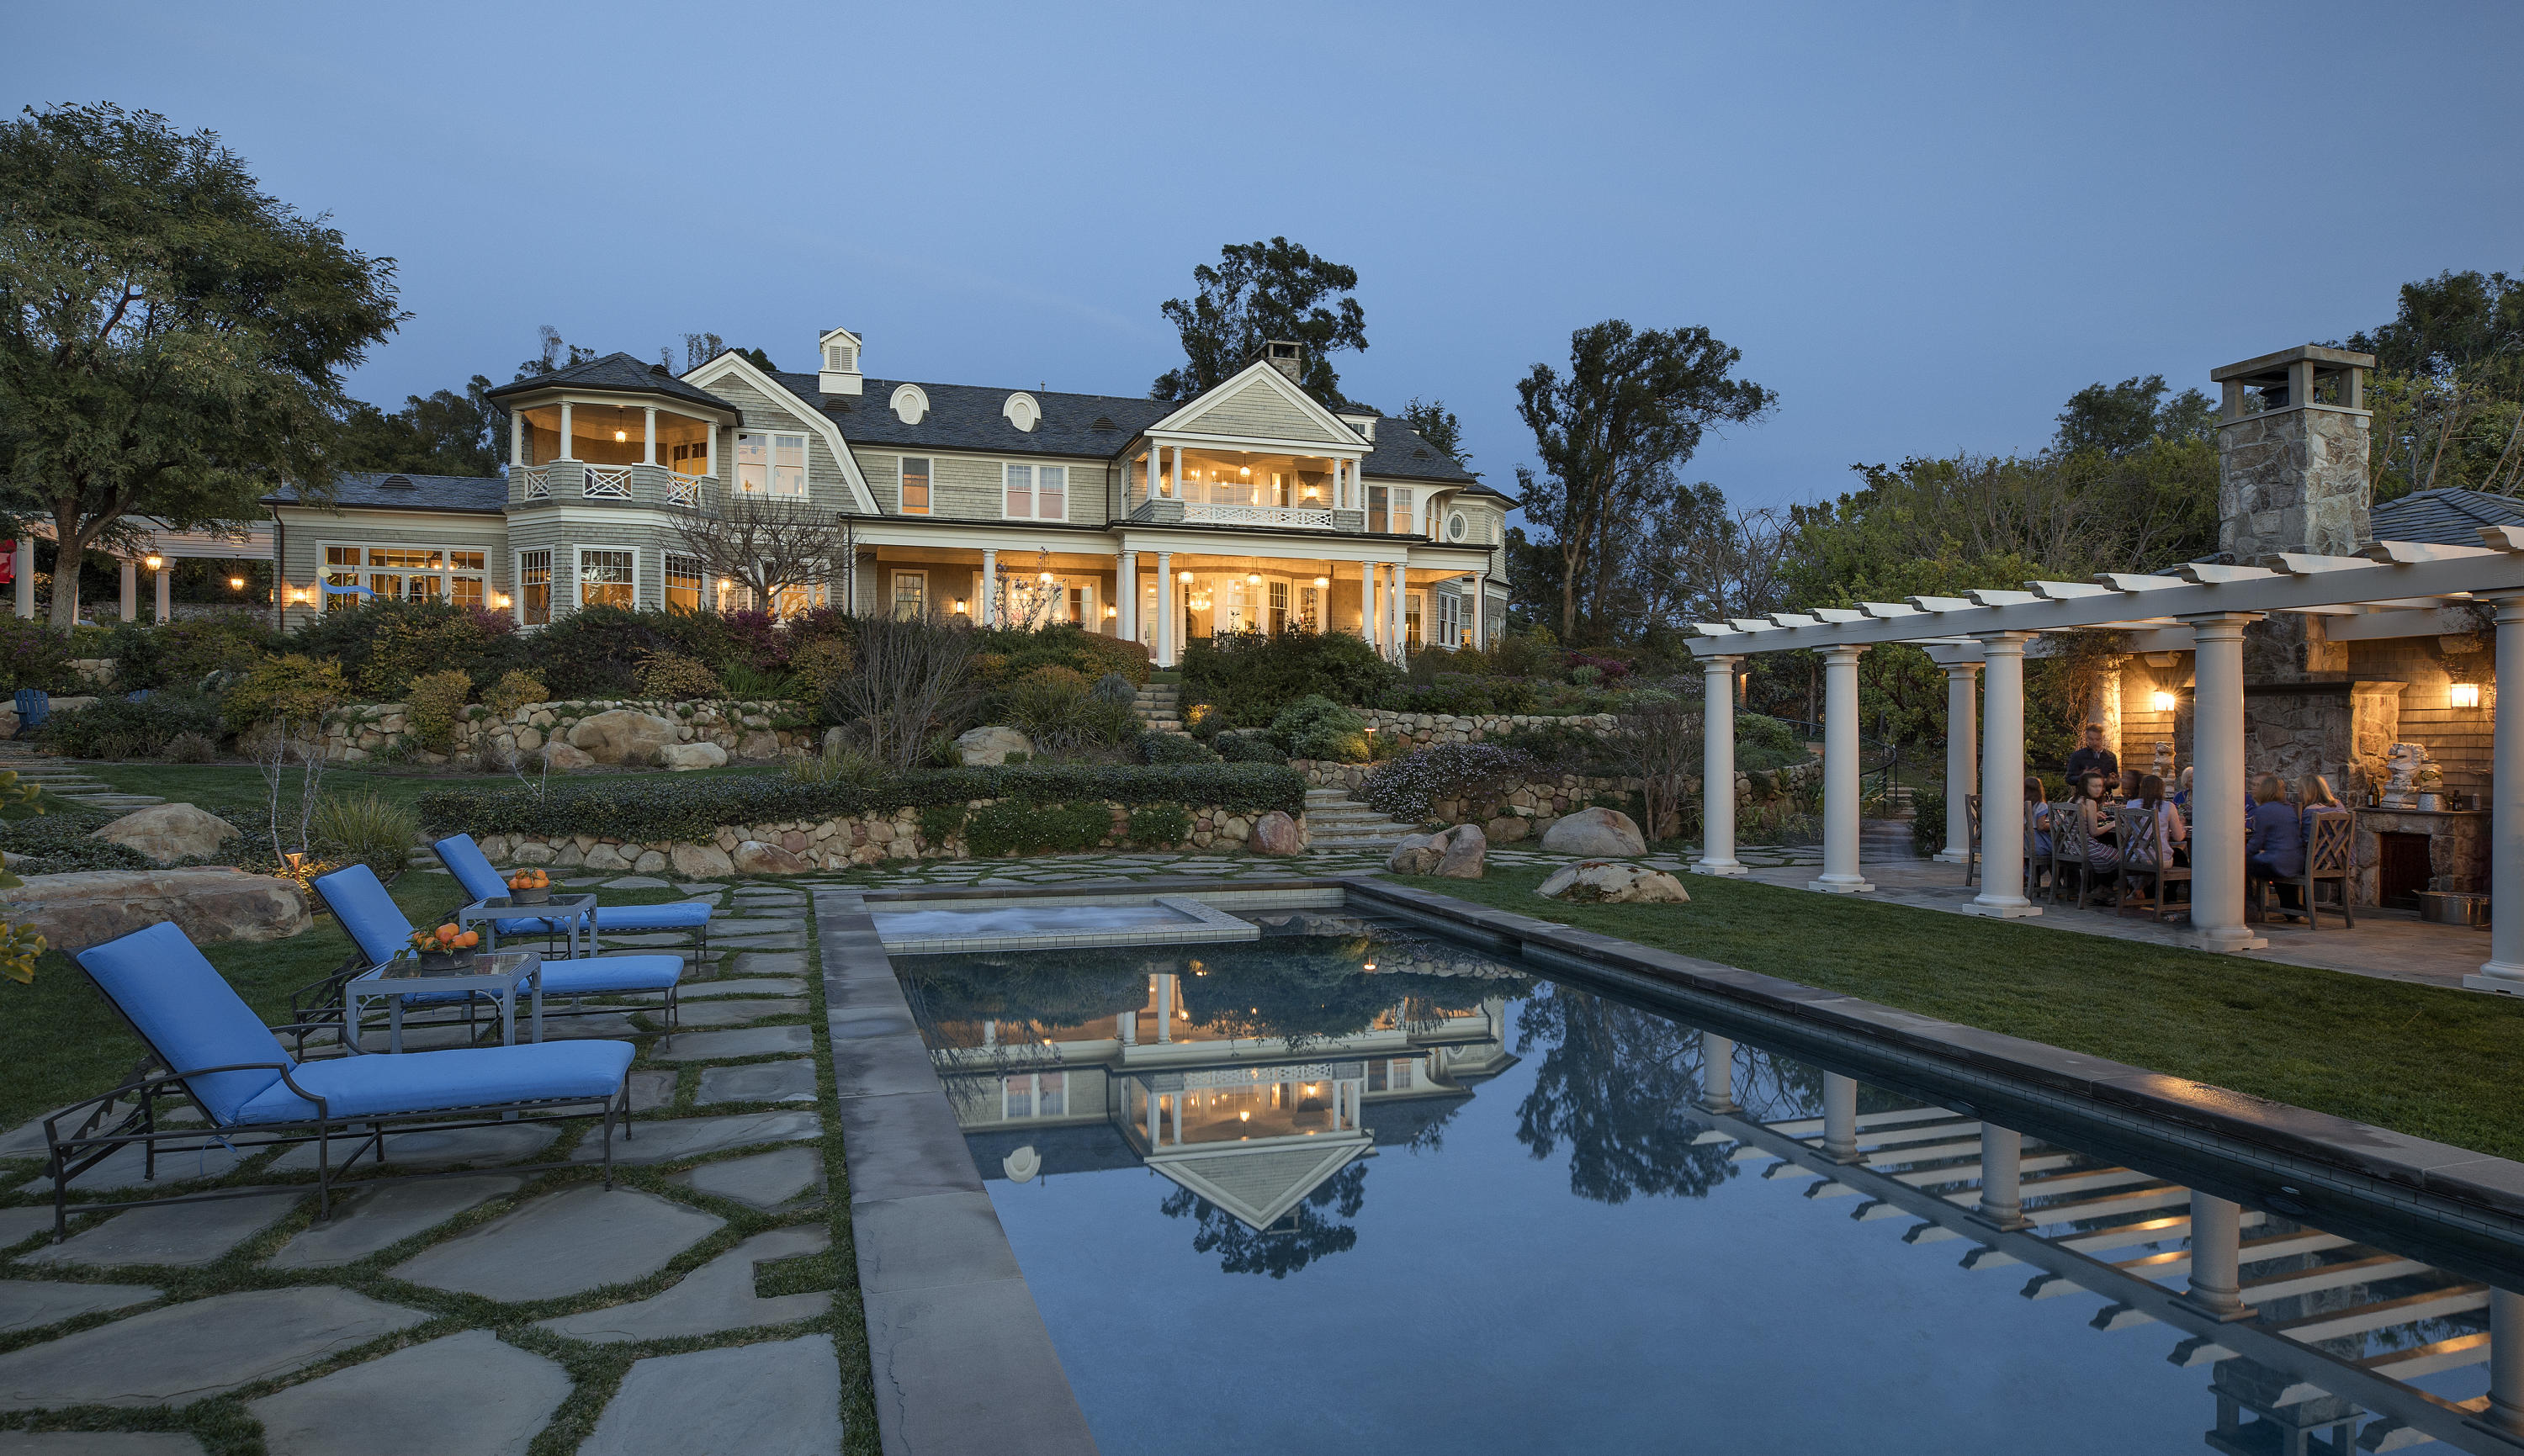 851  Buena Vista Dr, Santa Barbara, California